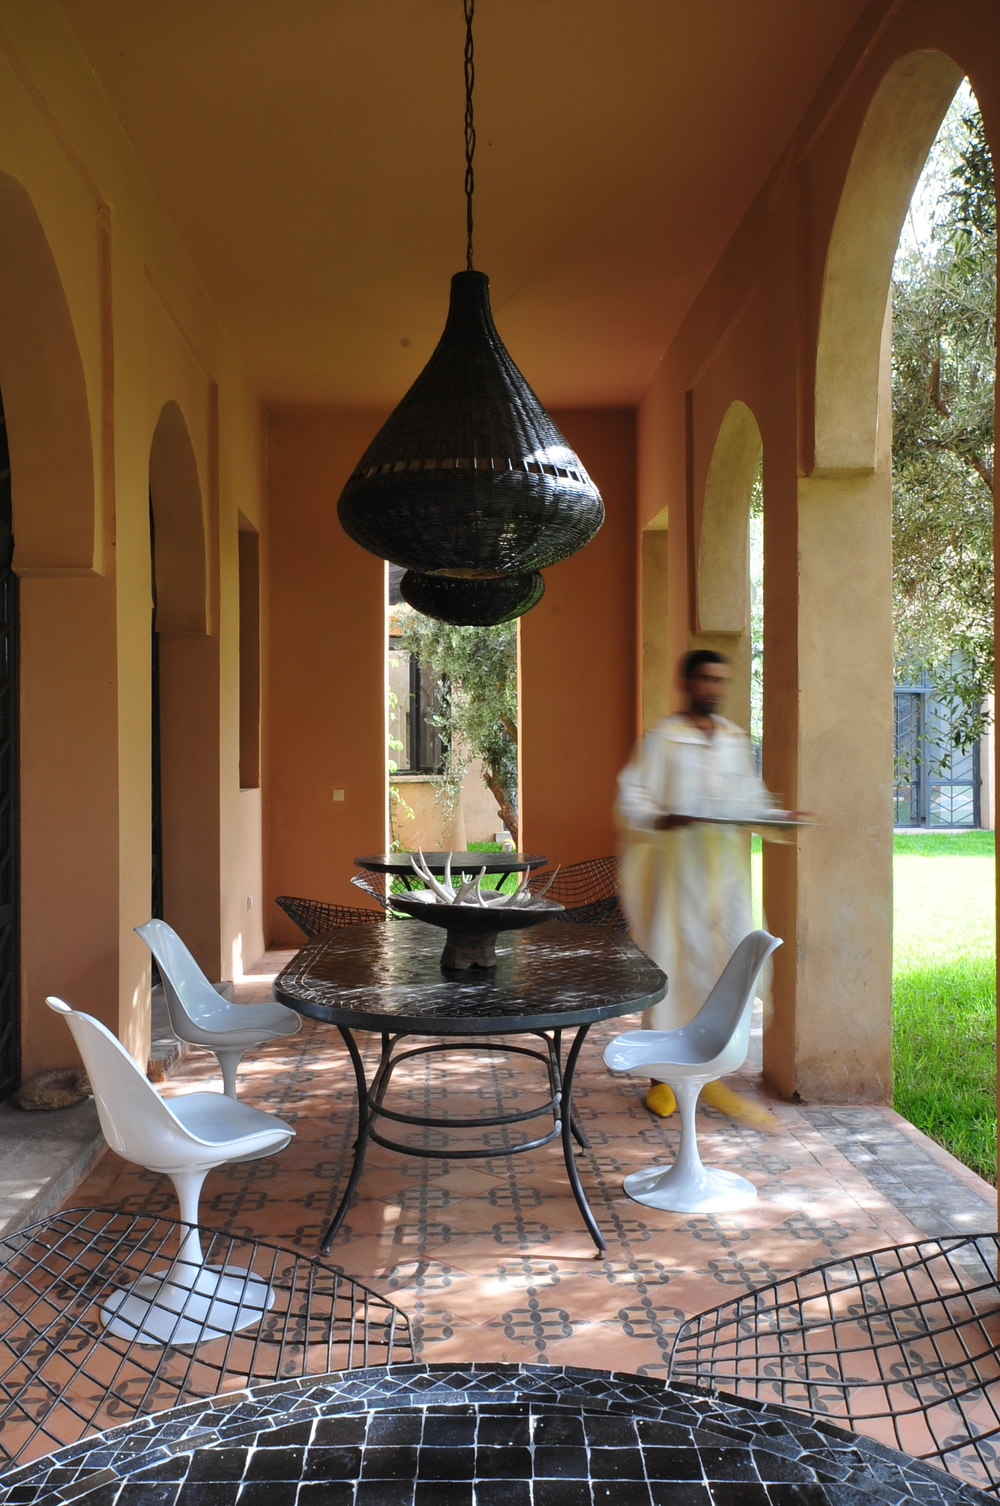 Peacock Pavilions boutique hotel in Marrakech, Morocco – Design by M. Montague - Terrace